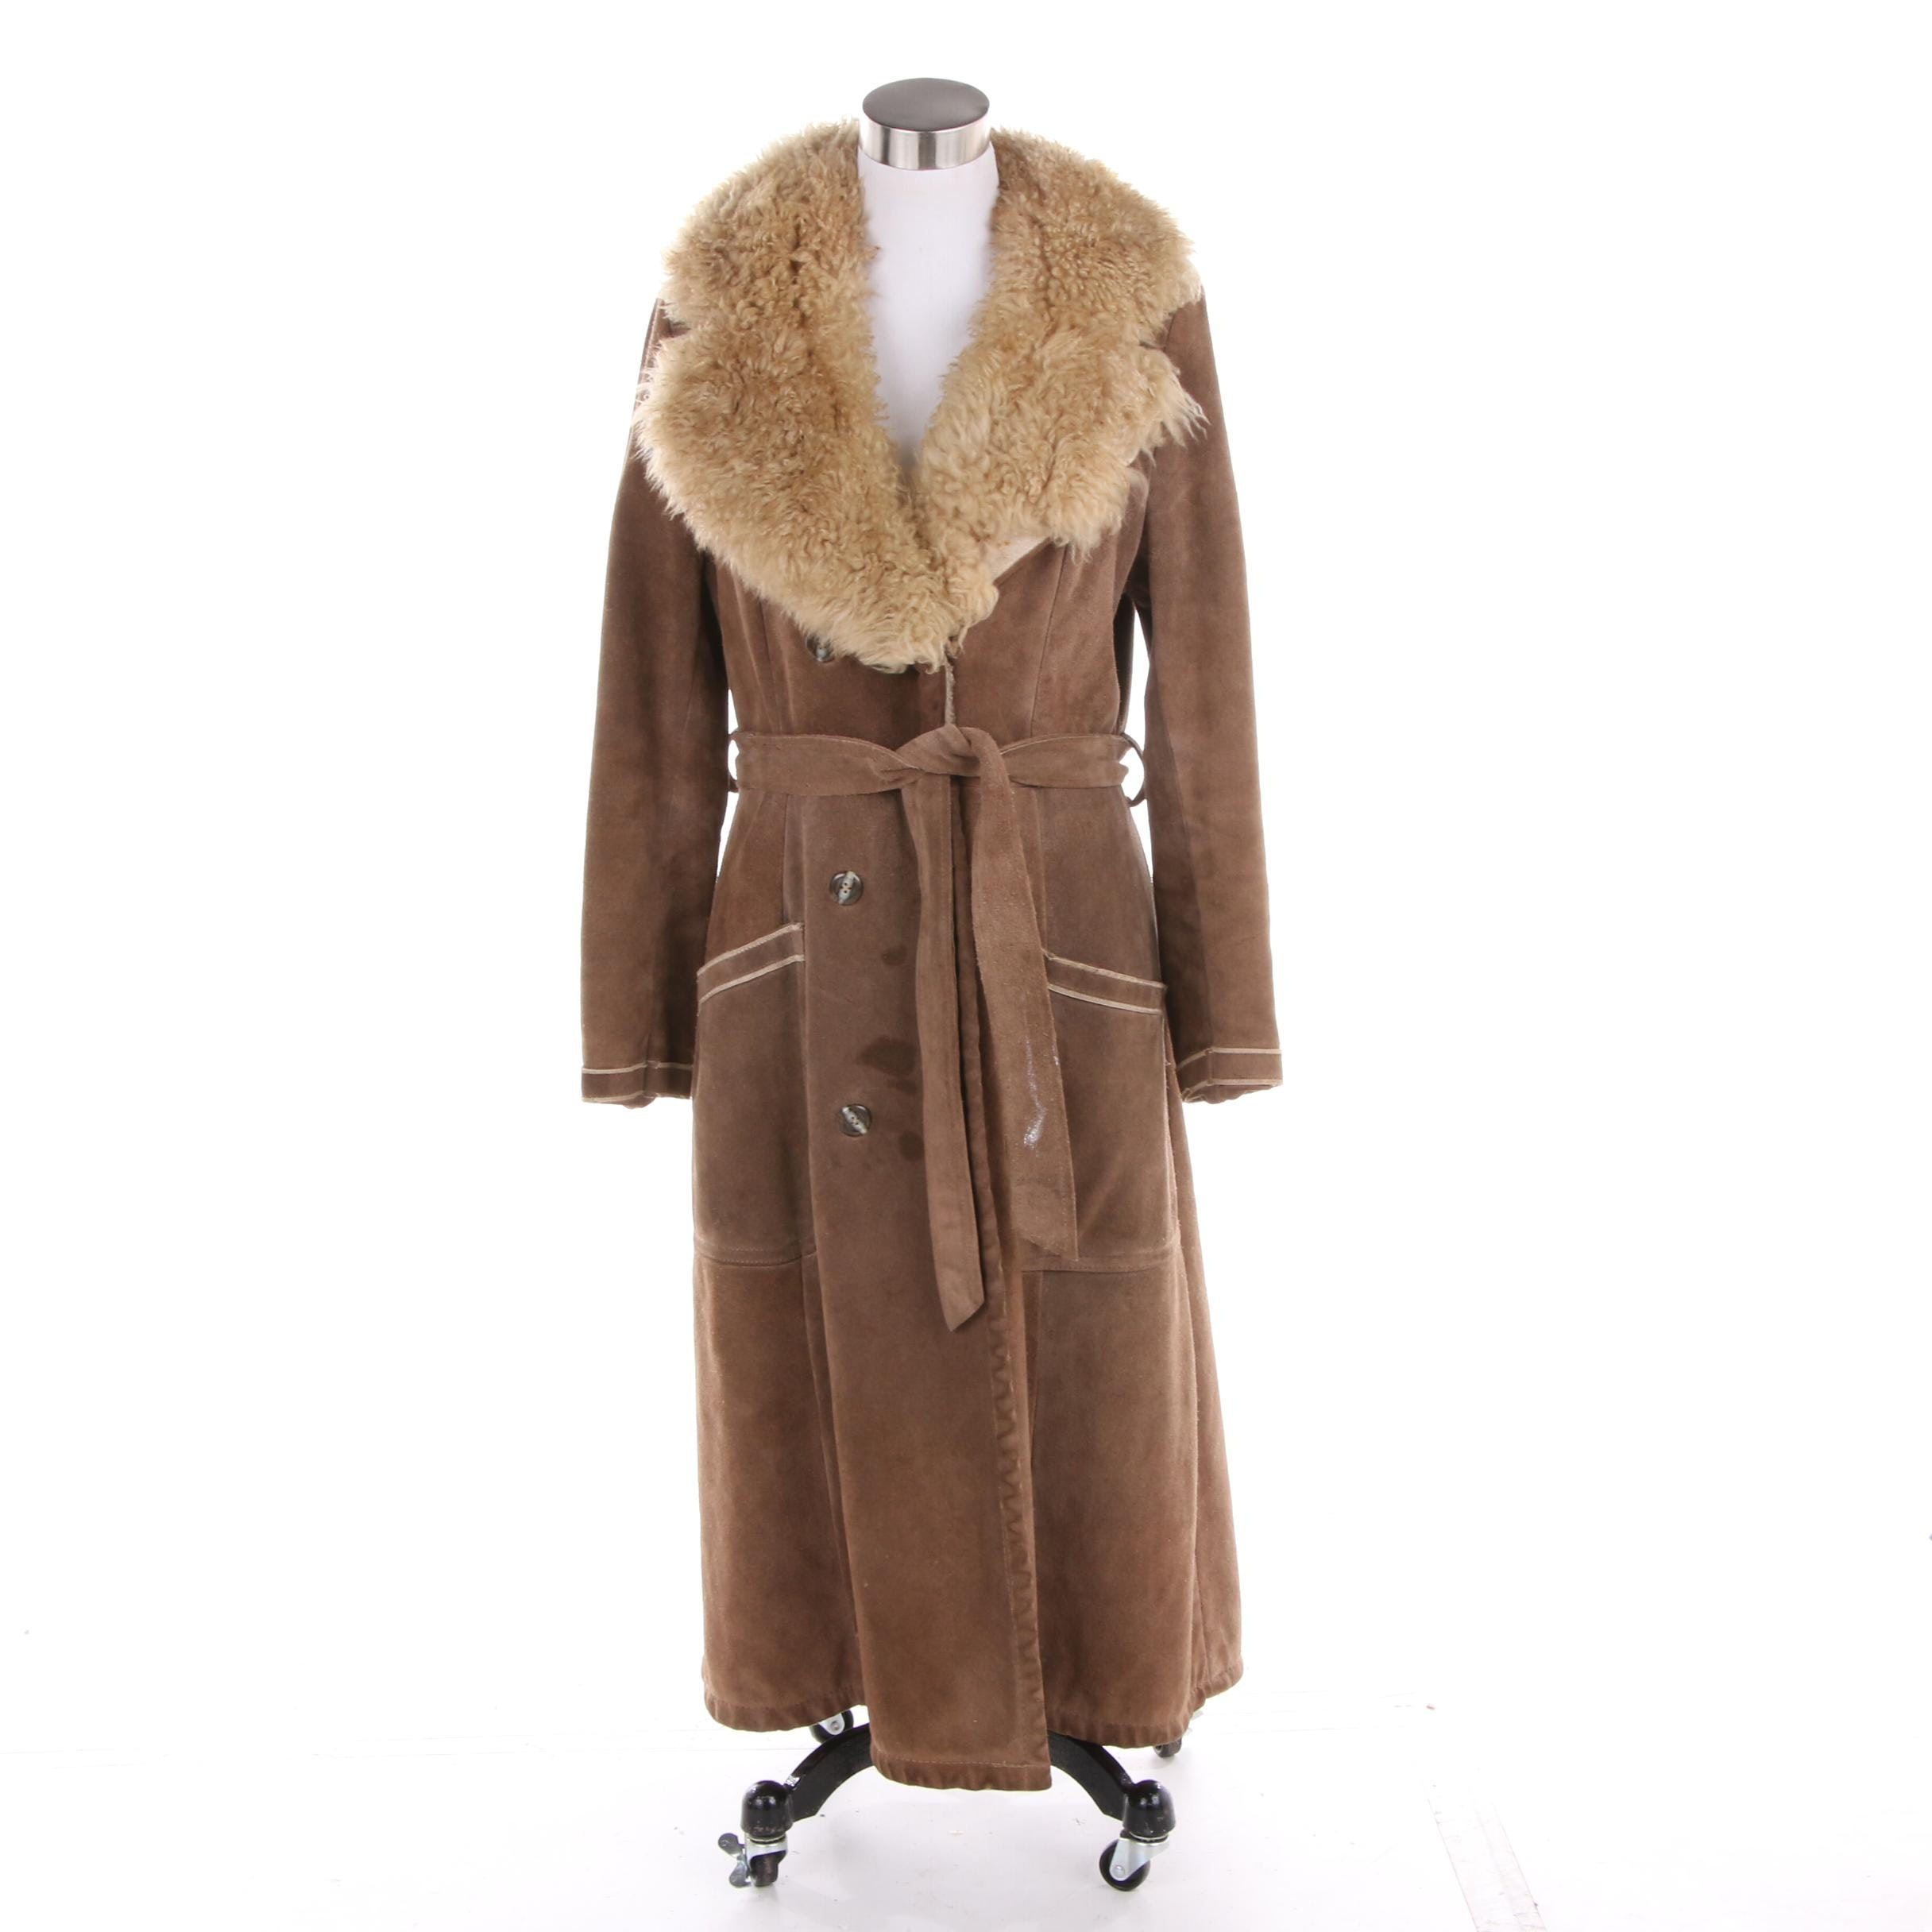 Women's Vintage Lord & Taylor Brown Suede and Shearling Coat